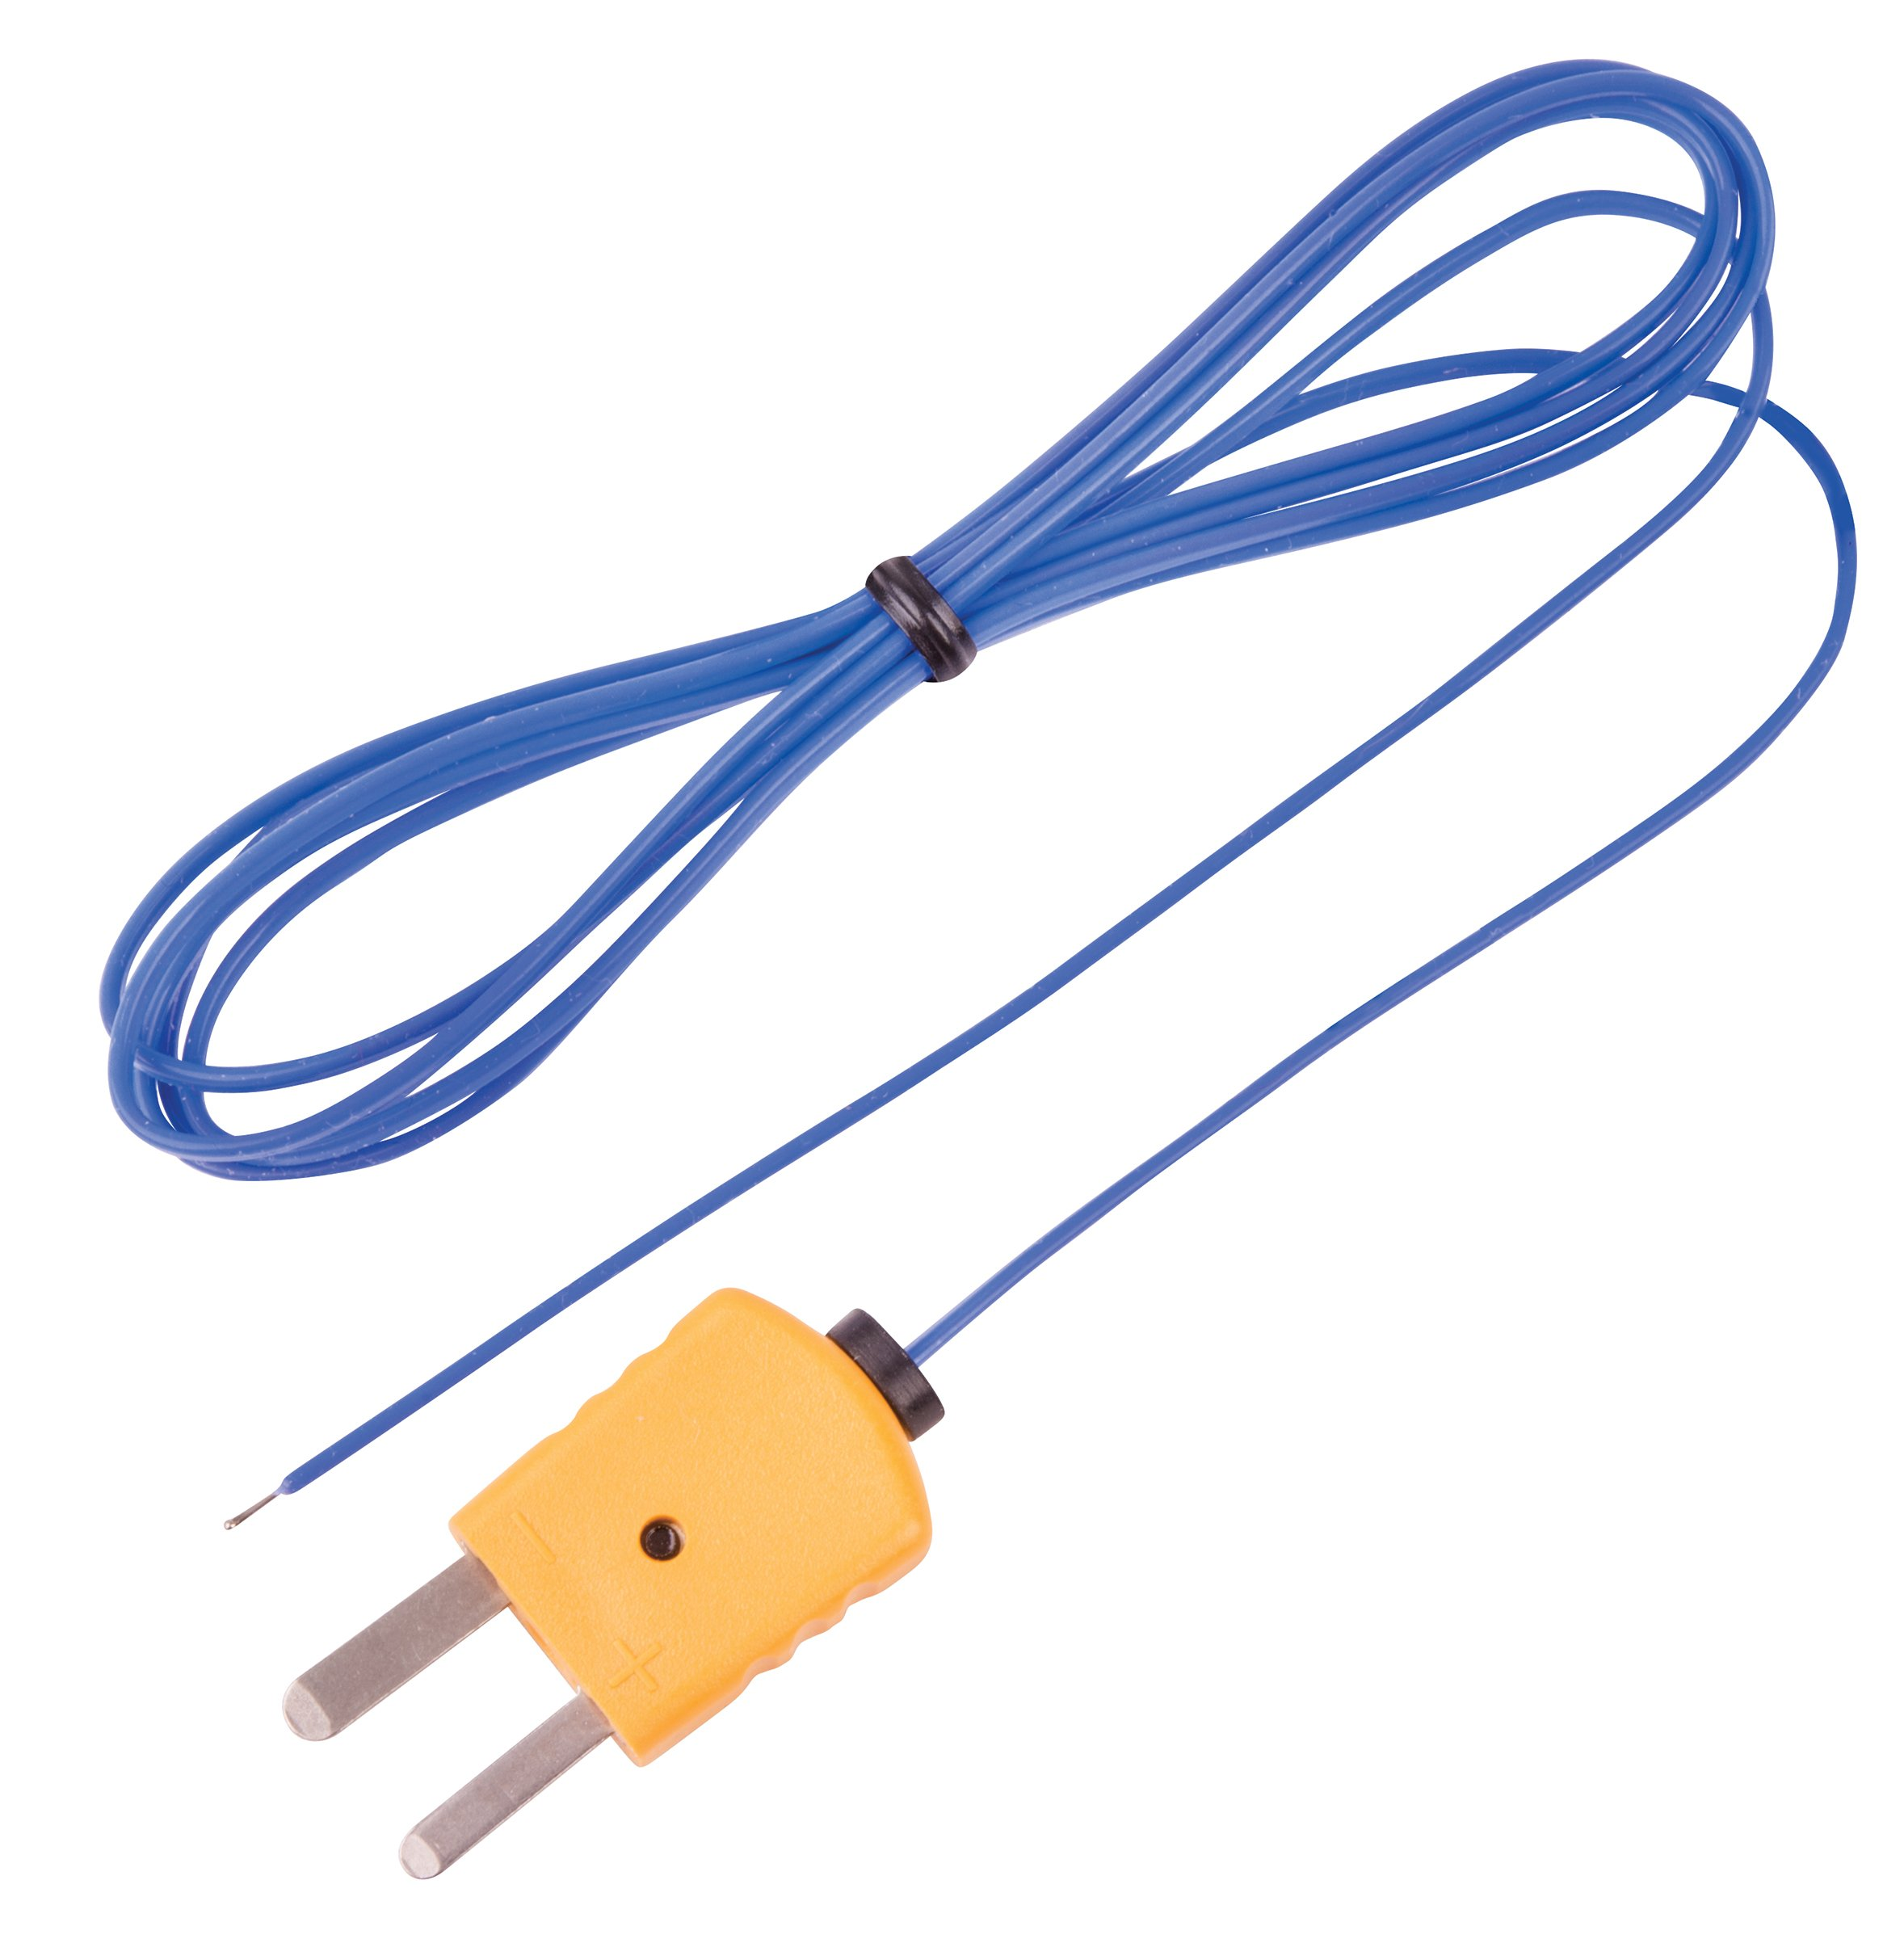 Buy REED INSTRUMENTS TP-01 Thermocouple Wire Probe,K,Mini,Plastic ...